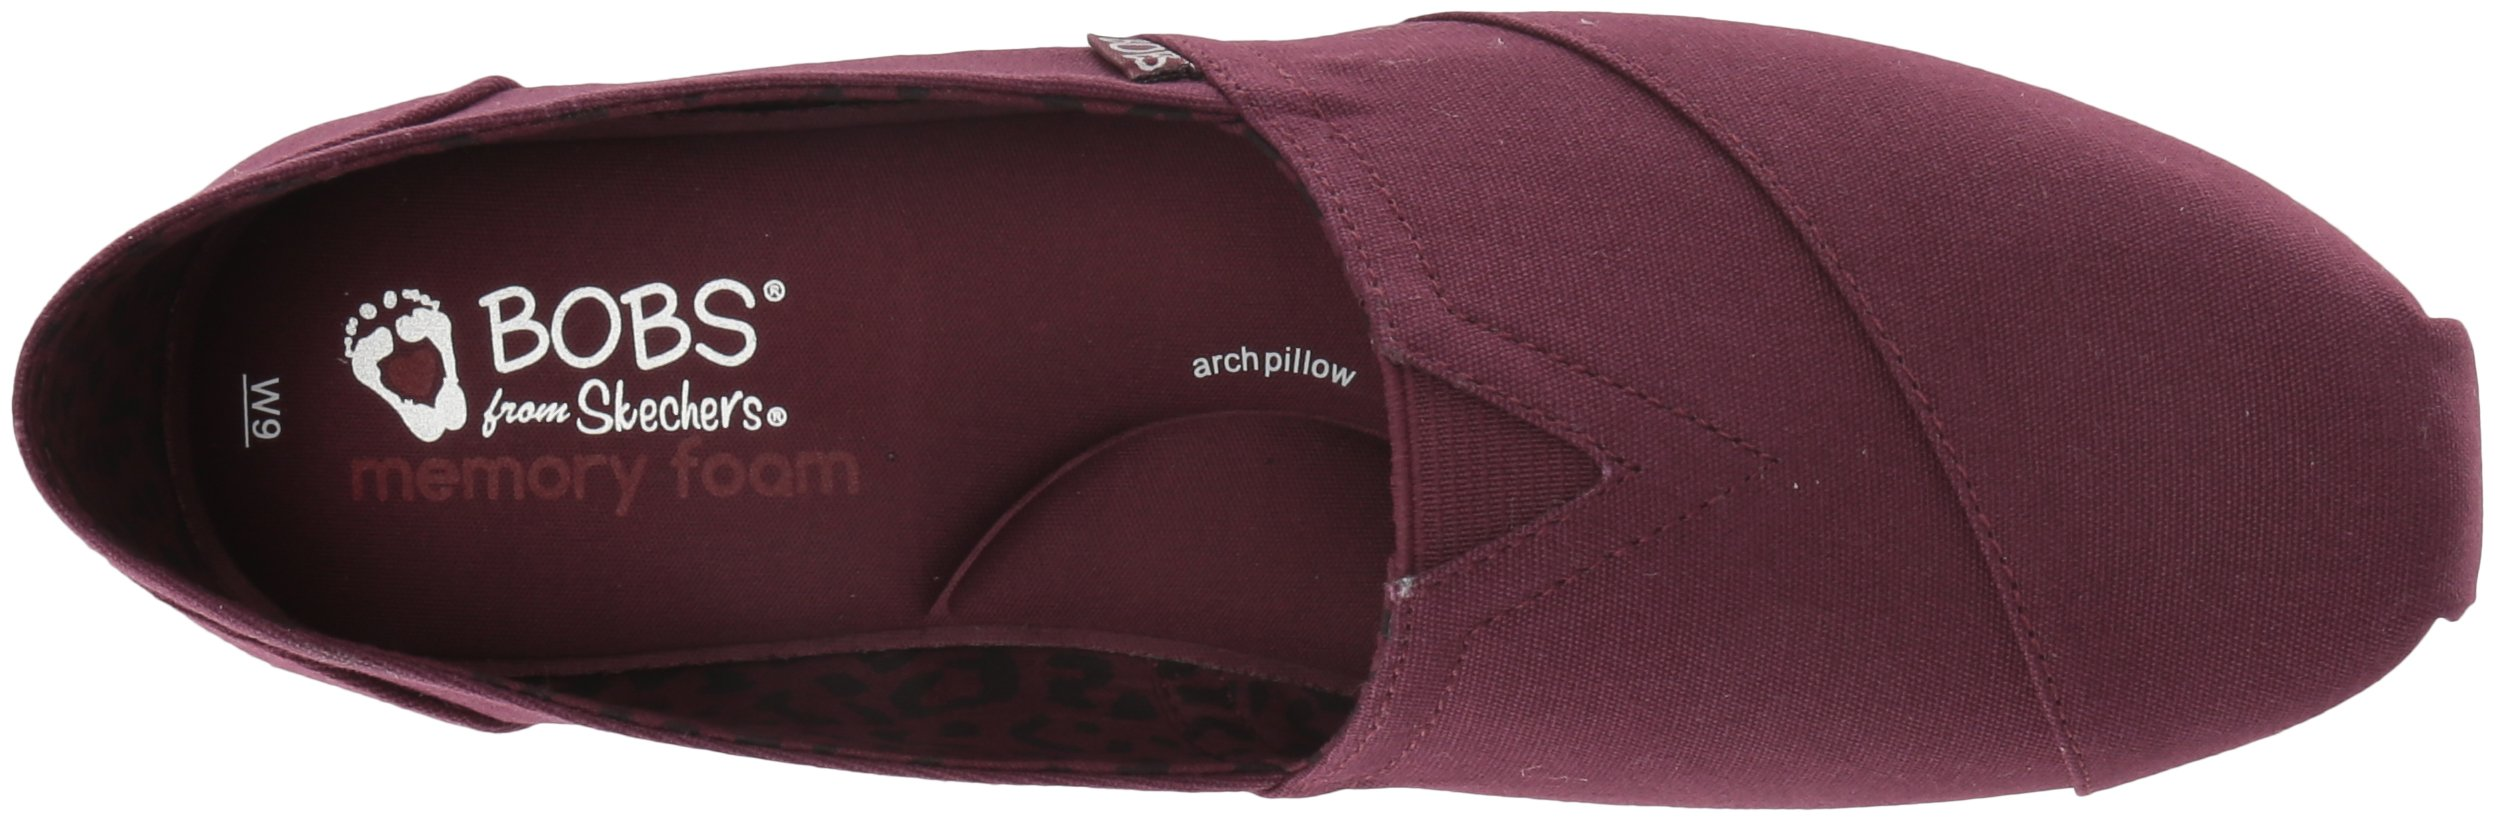 Skechers BOBS Women's Plush-Peace and Love Ballet Flat, Burgundy, 8 M US by Skechers (Image #7)